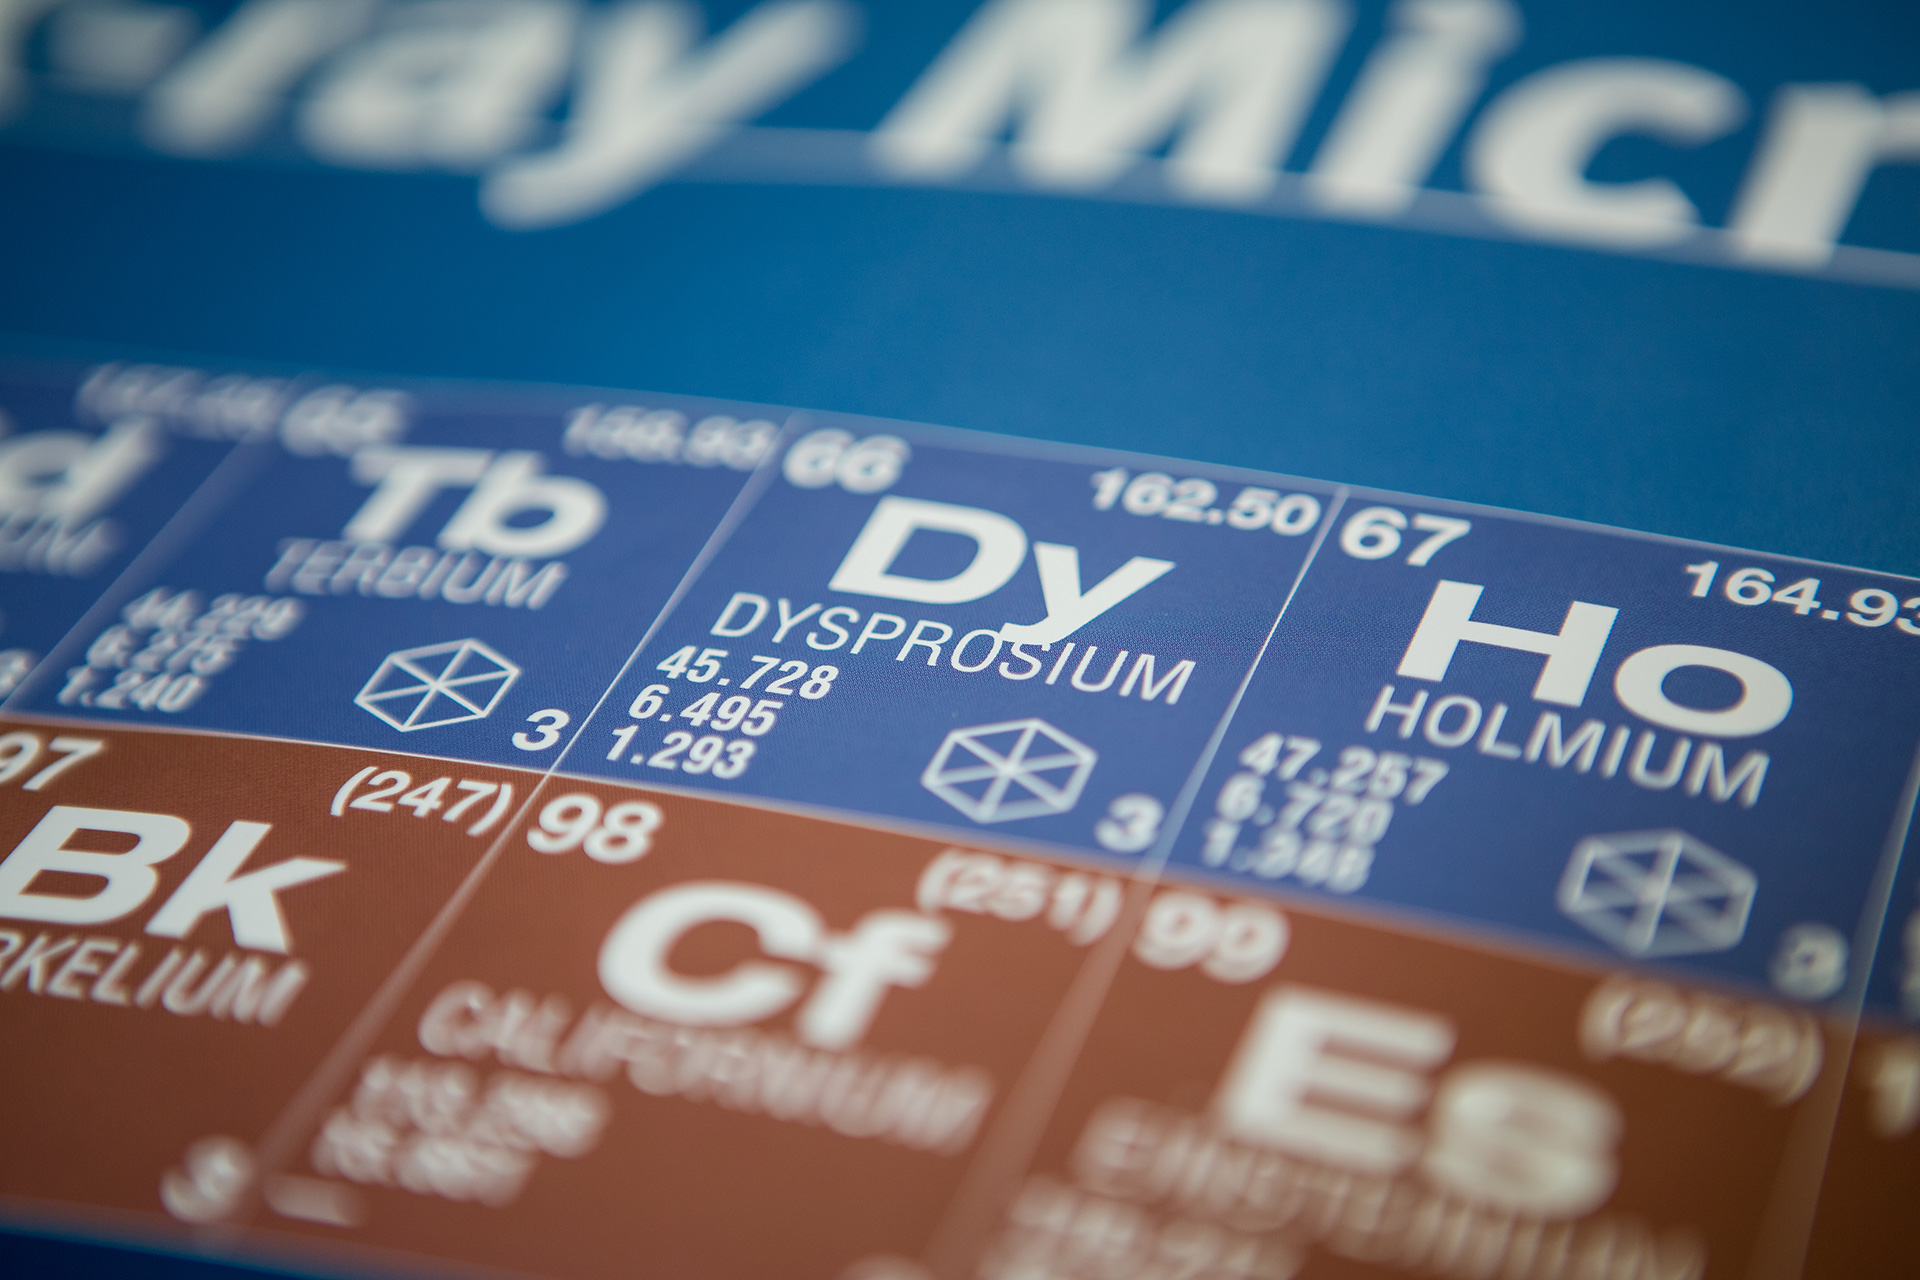 ASM produces 7.5kg of heavy rare earth metal dysprosium in Korea